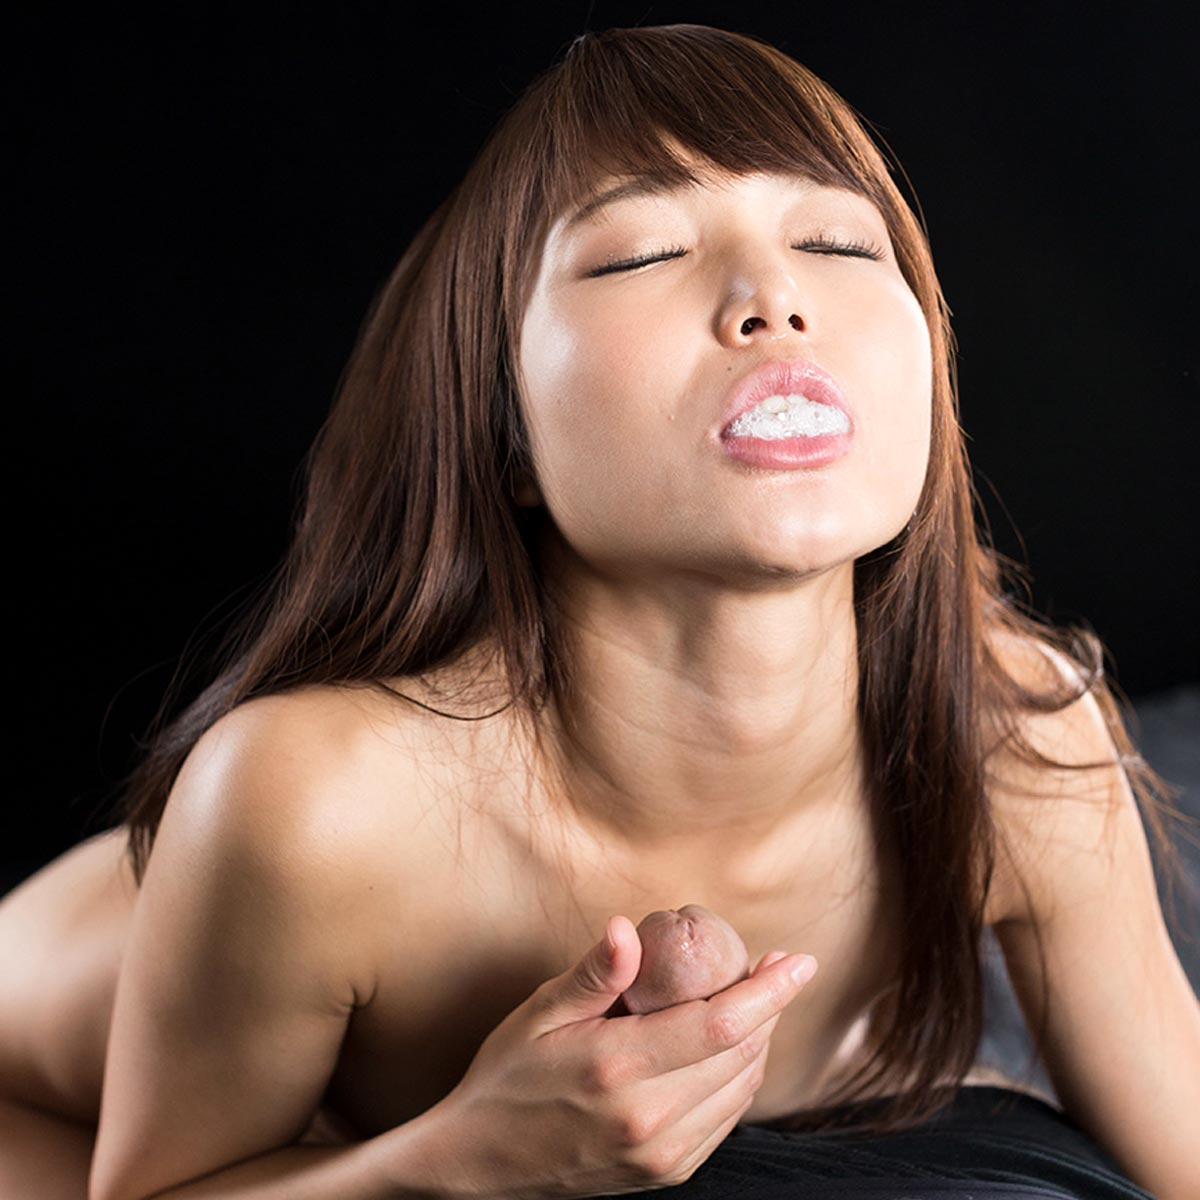 Shino Aoi (碧しの) a.k.a. Megumi Shino (篠めぐみ) is a Supermodel in uncensored Bukkake, Cum Fetish porn, Blowjobs, Leg Fetish and Lesbian Sex videos.